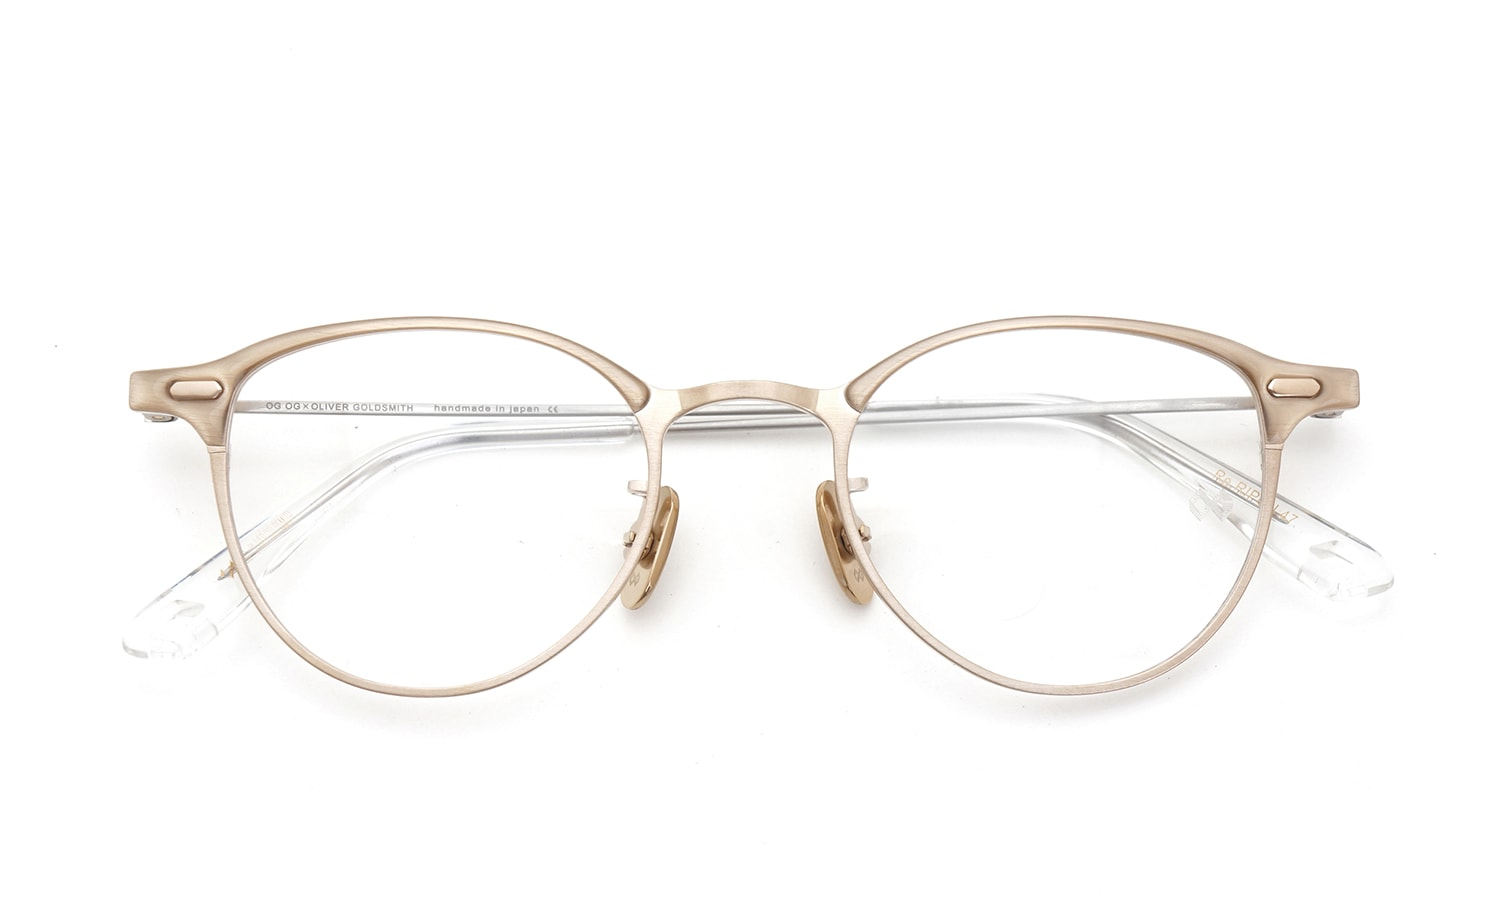 OG-by-OLIVERGOLDSMITH Re-RIPON-47 Col-054